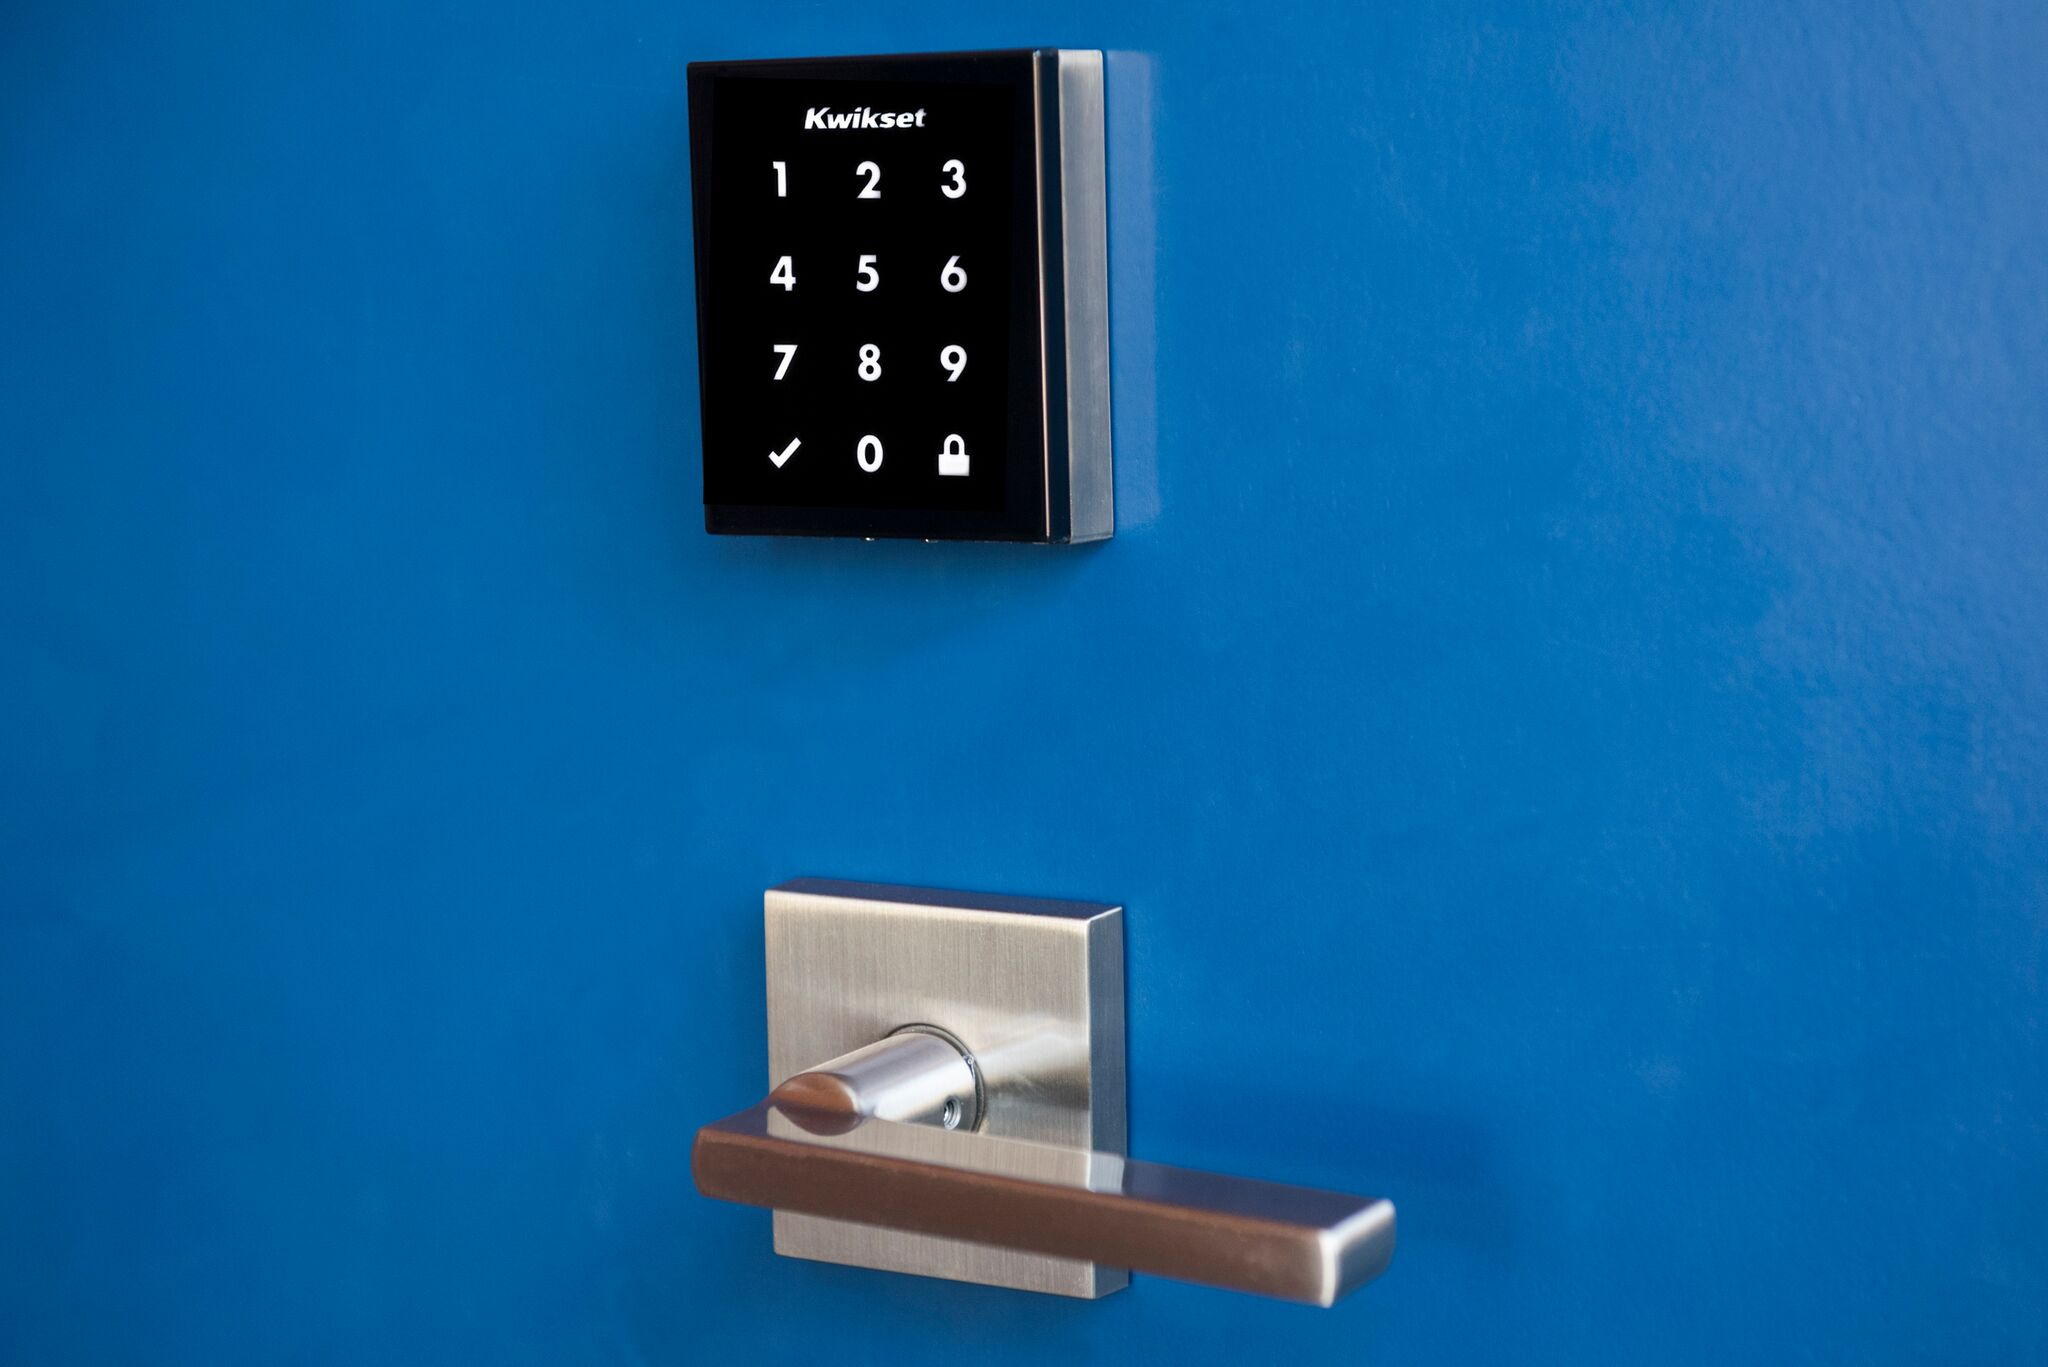 ae revolutionizes open using back touch door the home media kevo abby entry kwikset and fing draper smartphone imre en news lock doors to